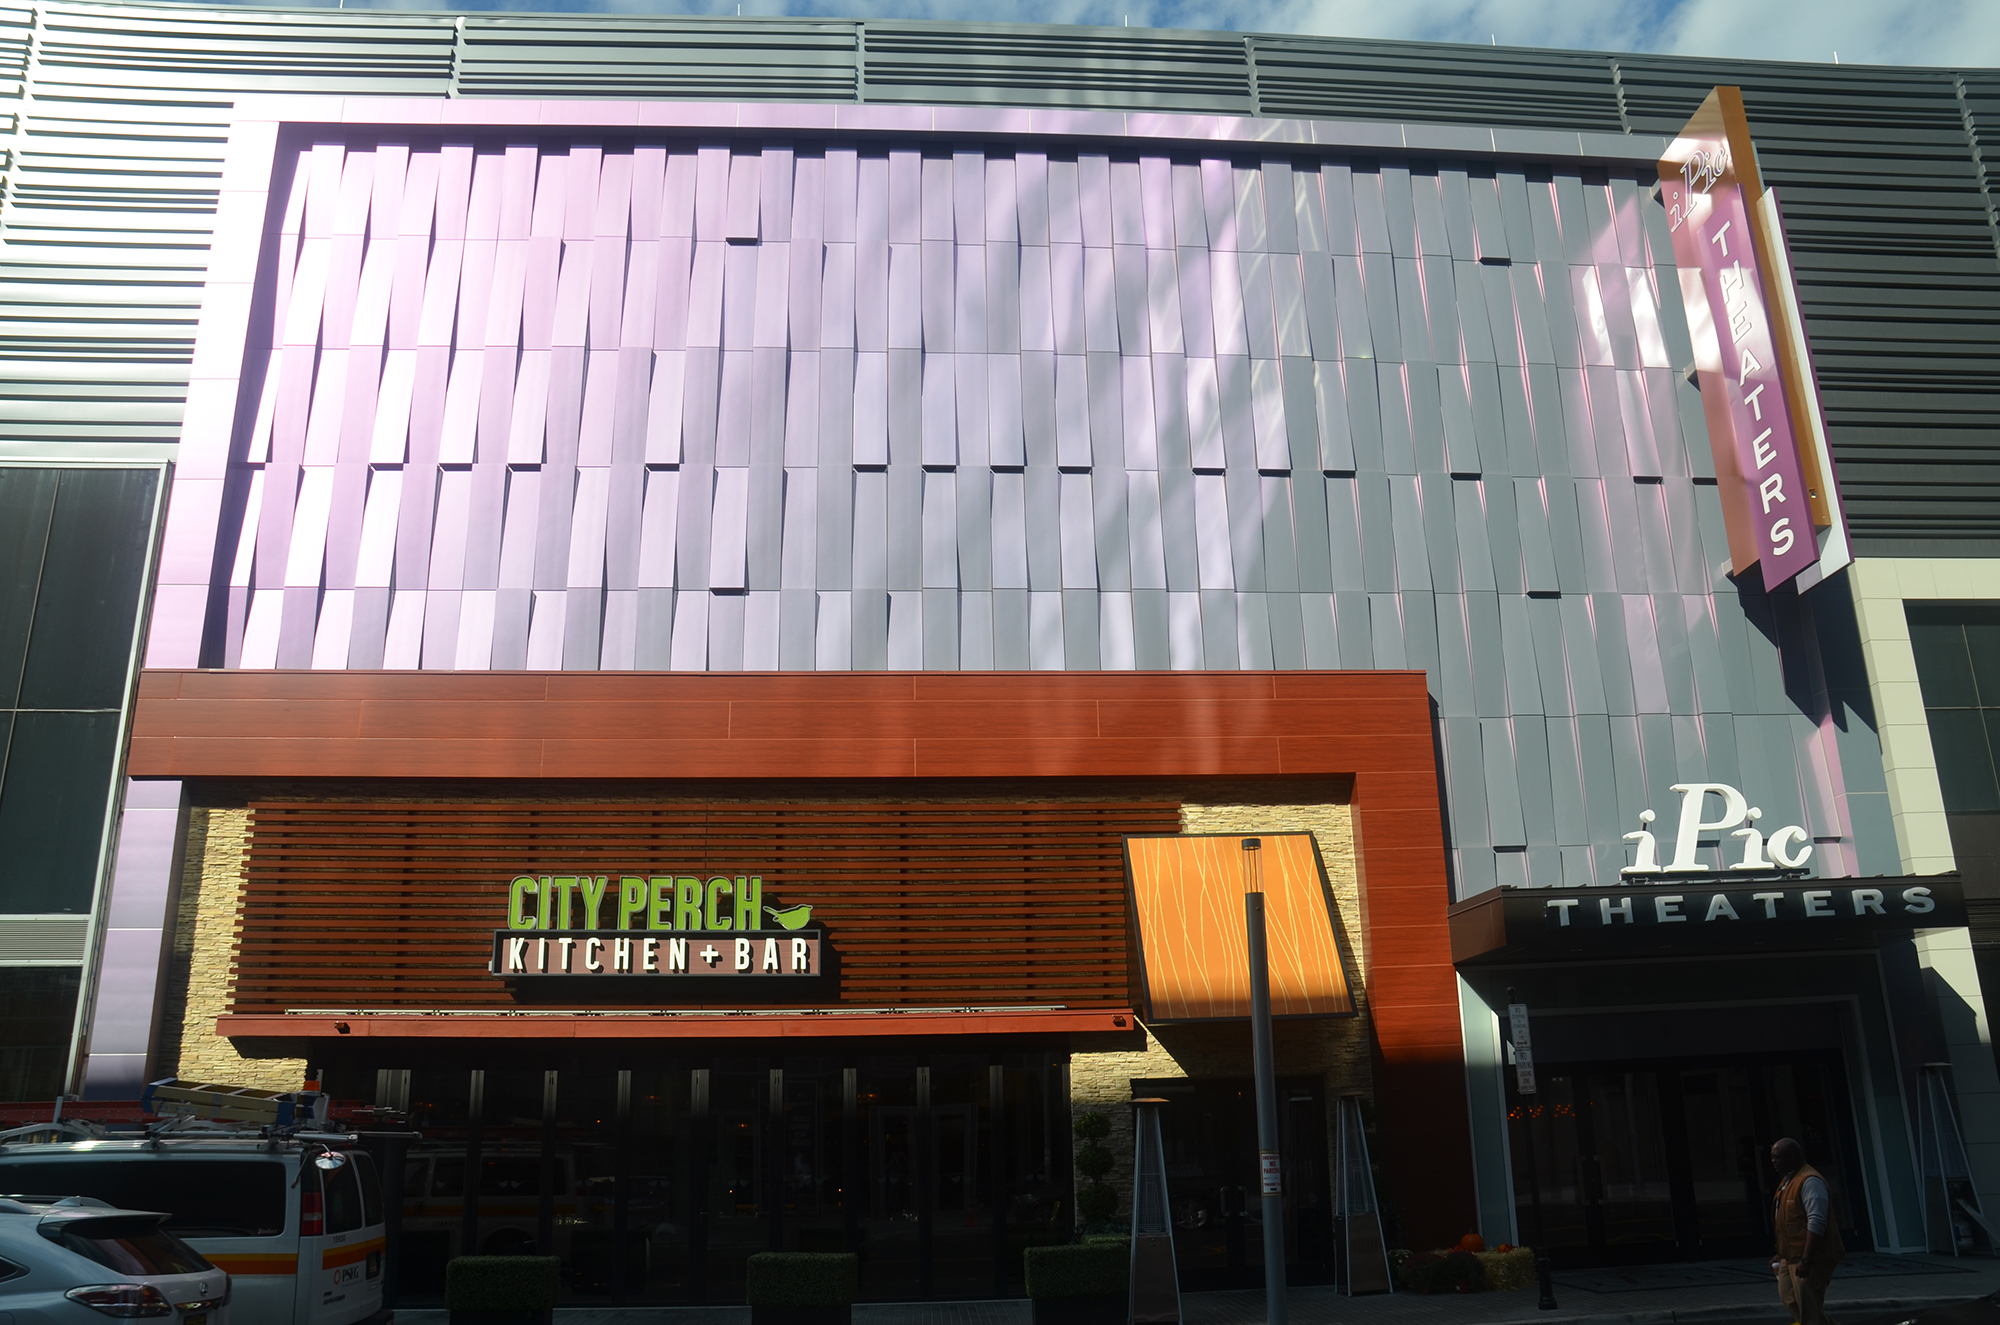 City Perch and iPic Theaters at Hudson Lights in Fort Lee